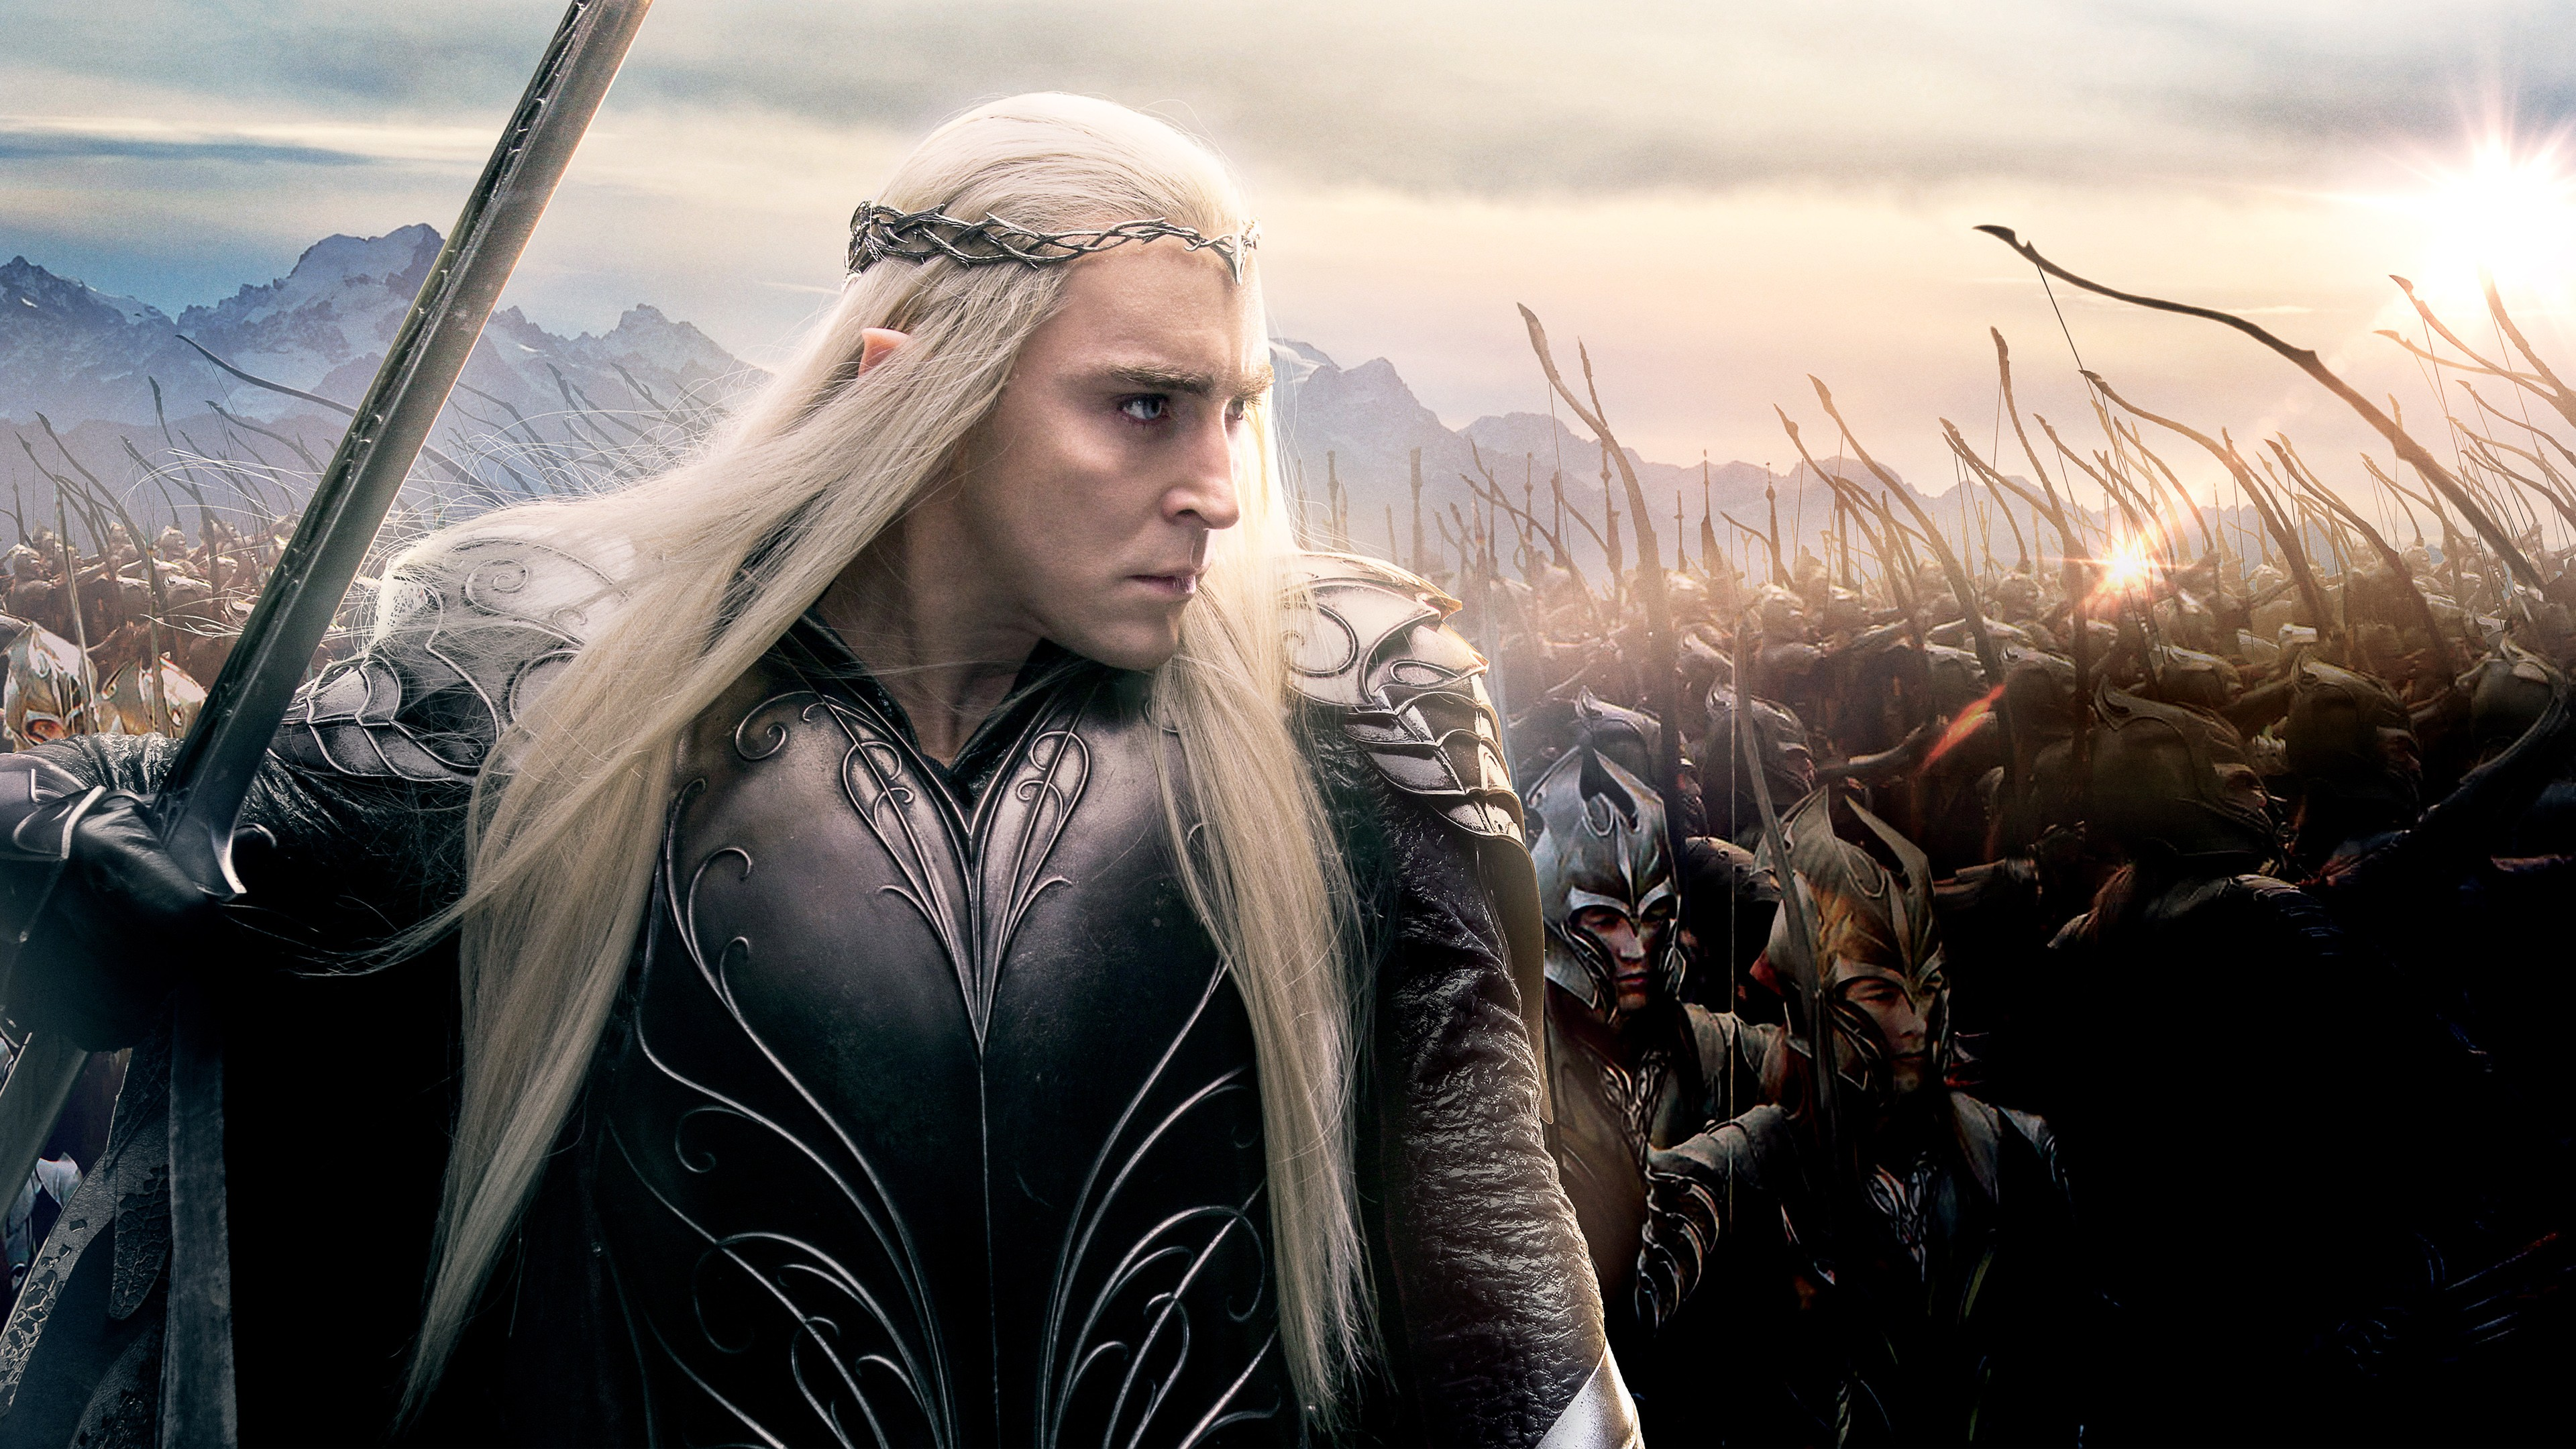 Latest Sports Cars 2014 Wallpaper Lee Pace As Thranduil In Hobbit 3 Wallpapers Hd